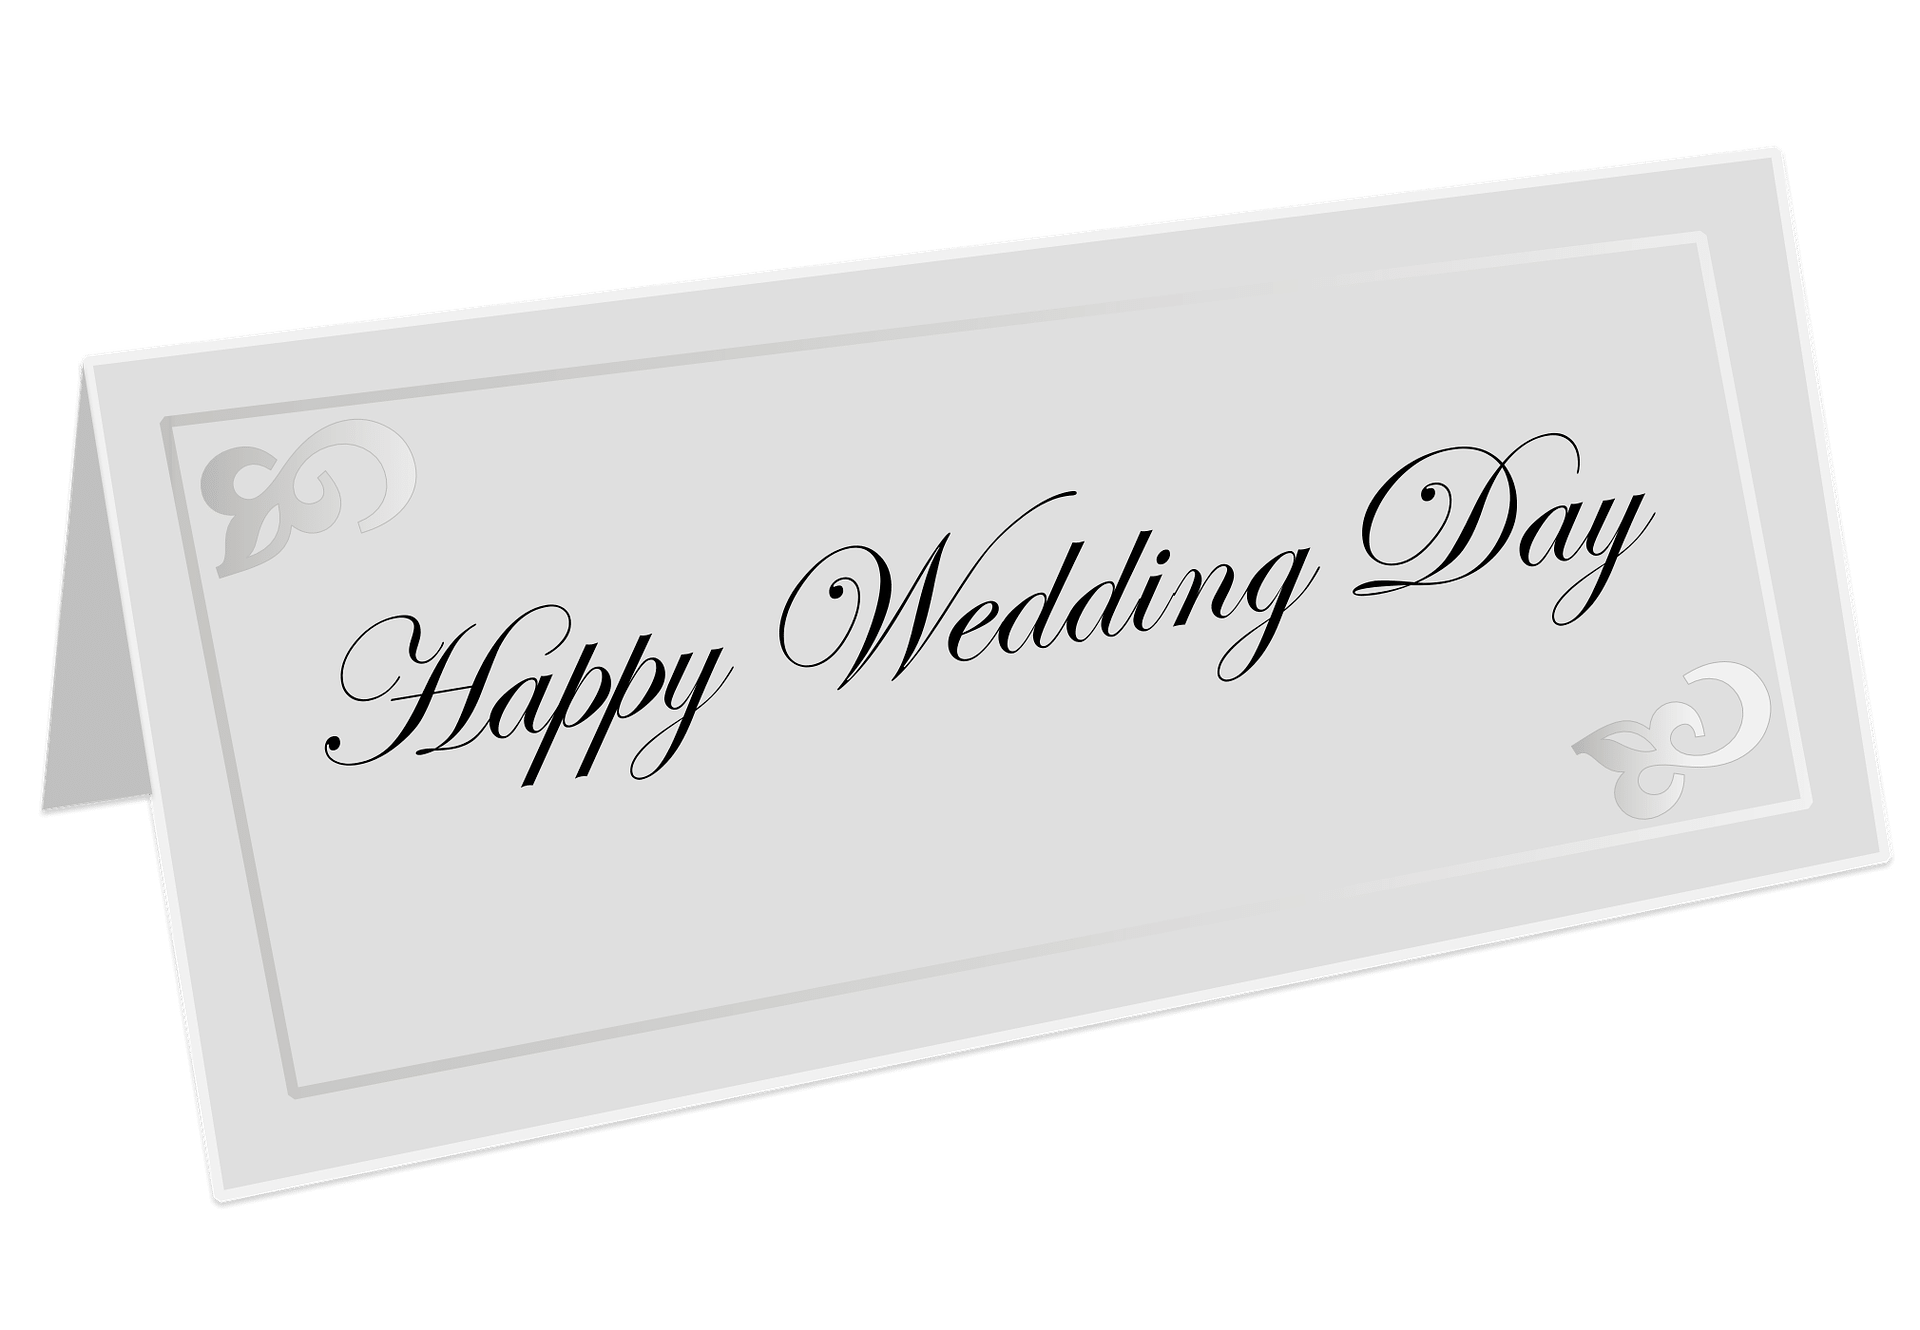 happy-wedding-day-card-1428854_1920 How to find the best wedding toastmaster for you